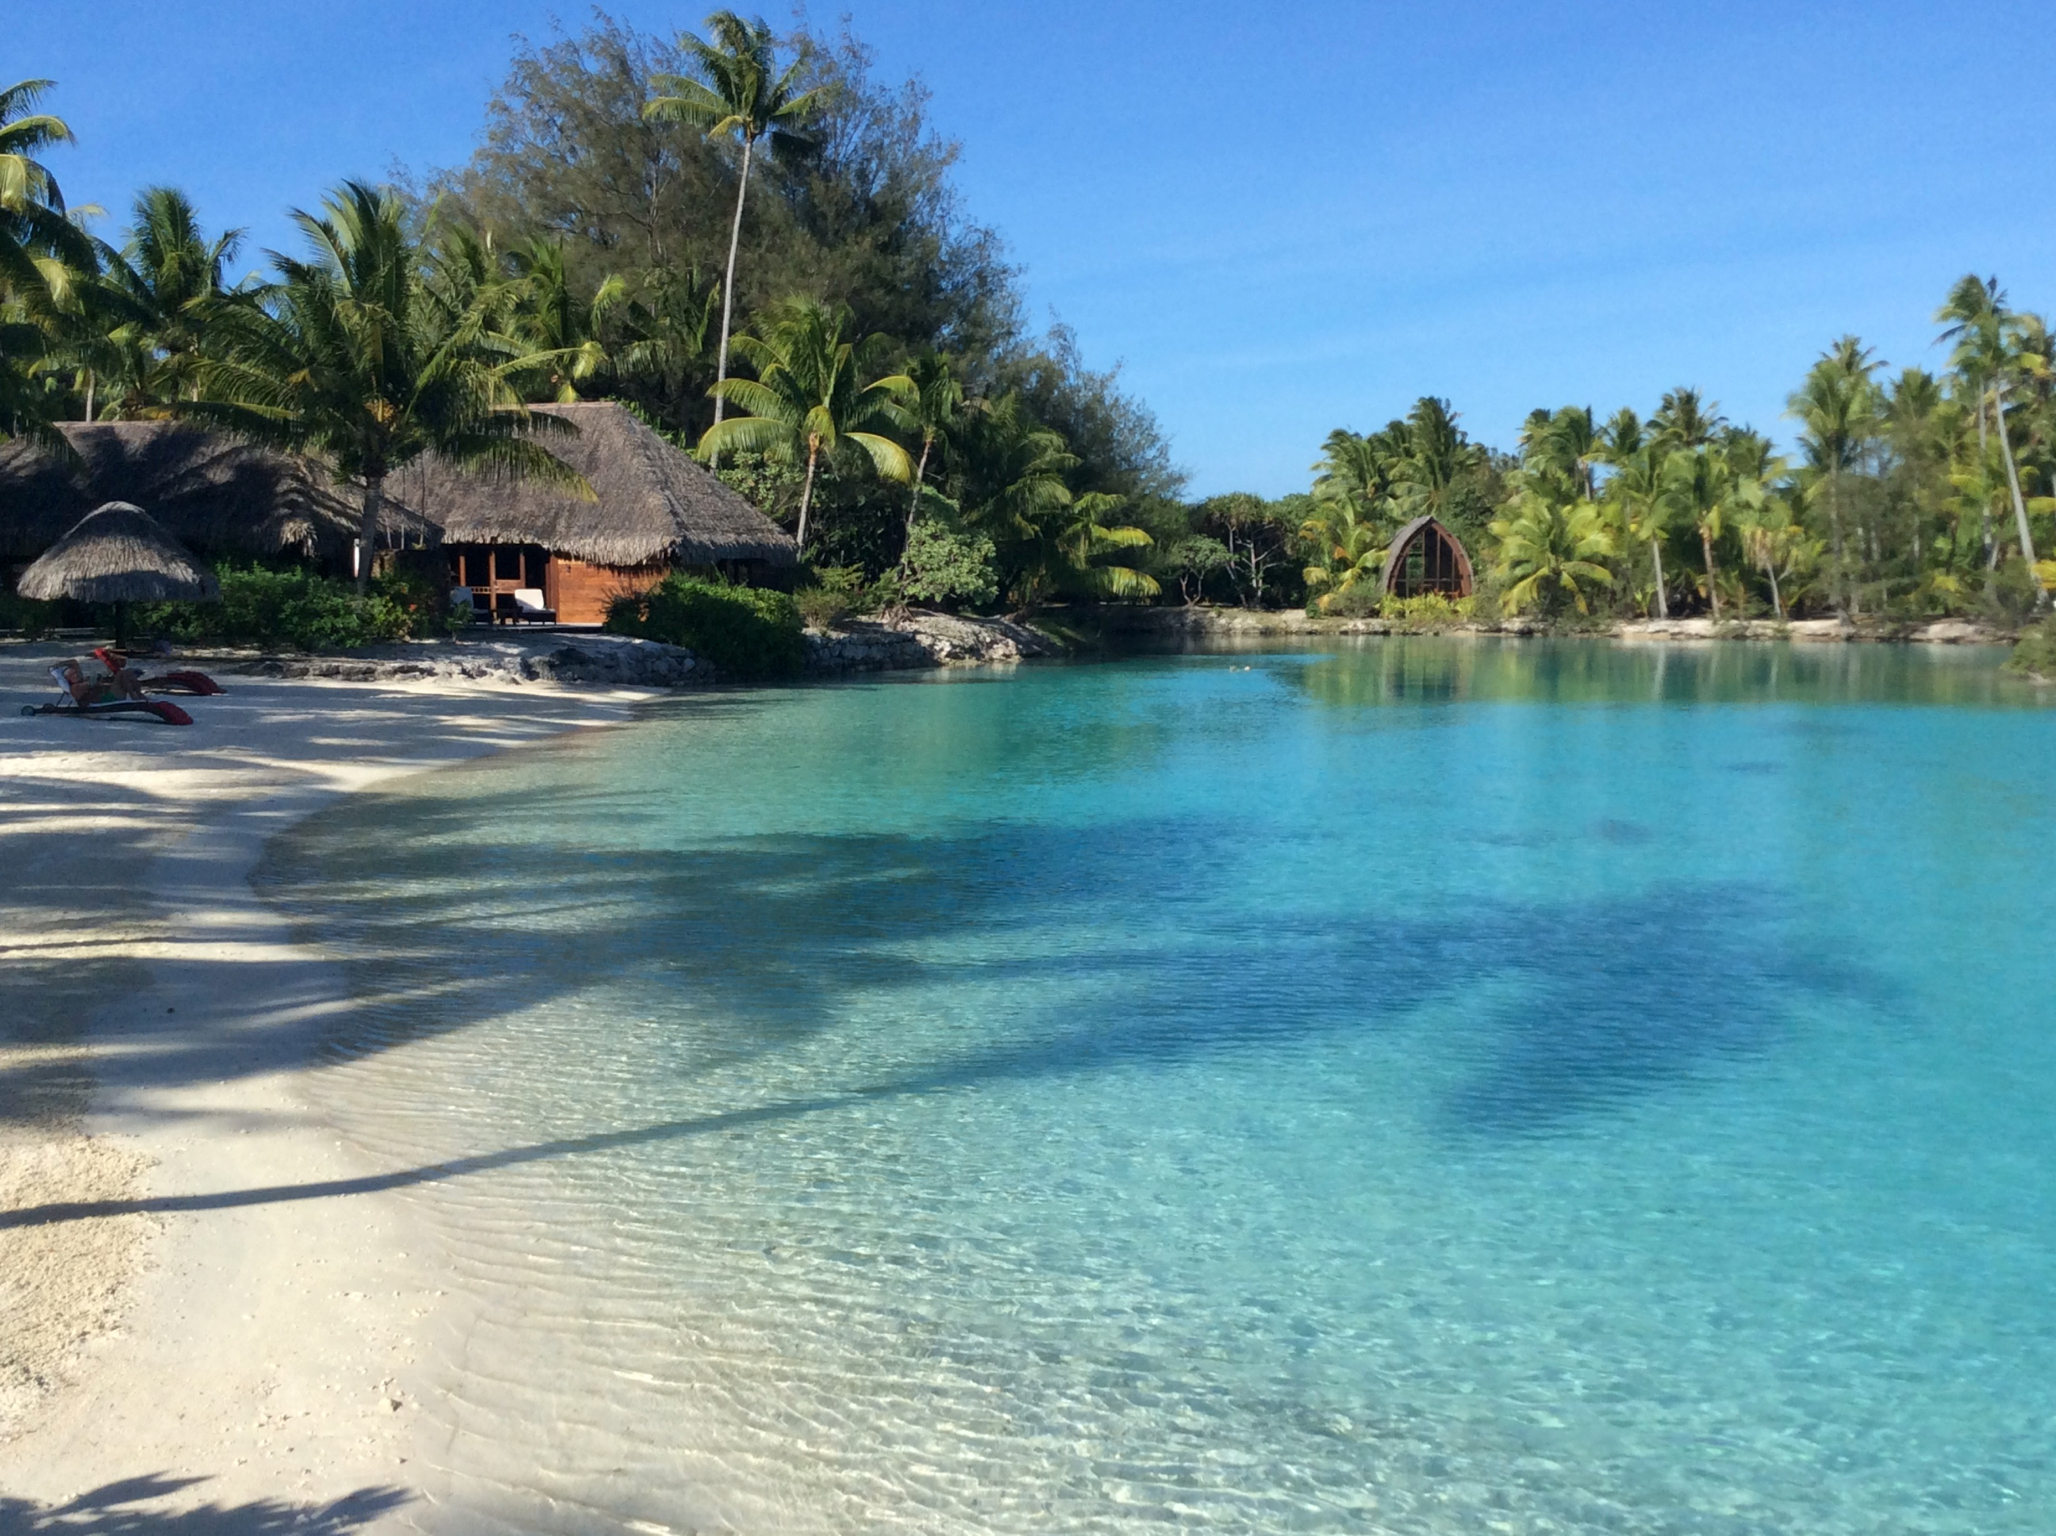 The stunning lagoon sanctuary where we spent almost all our time.